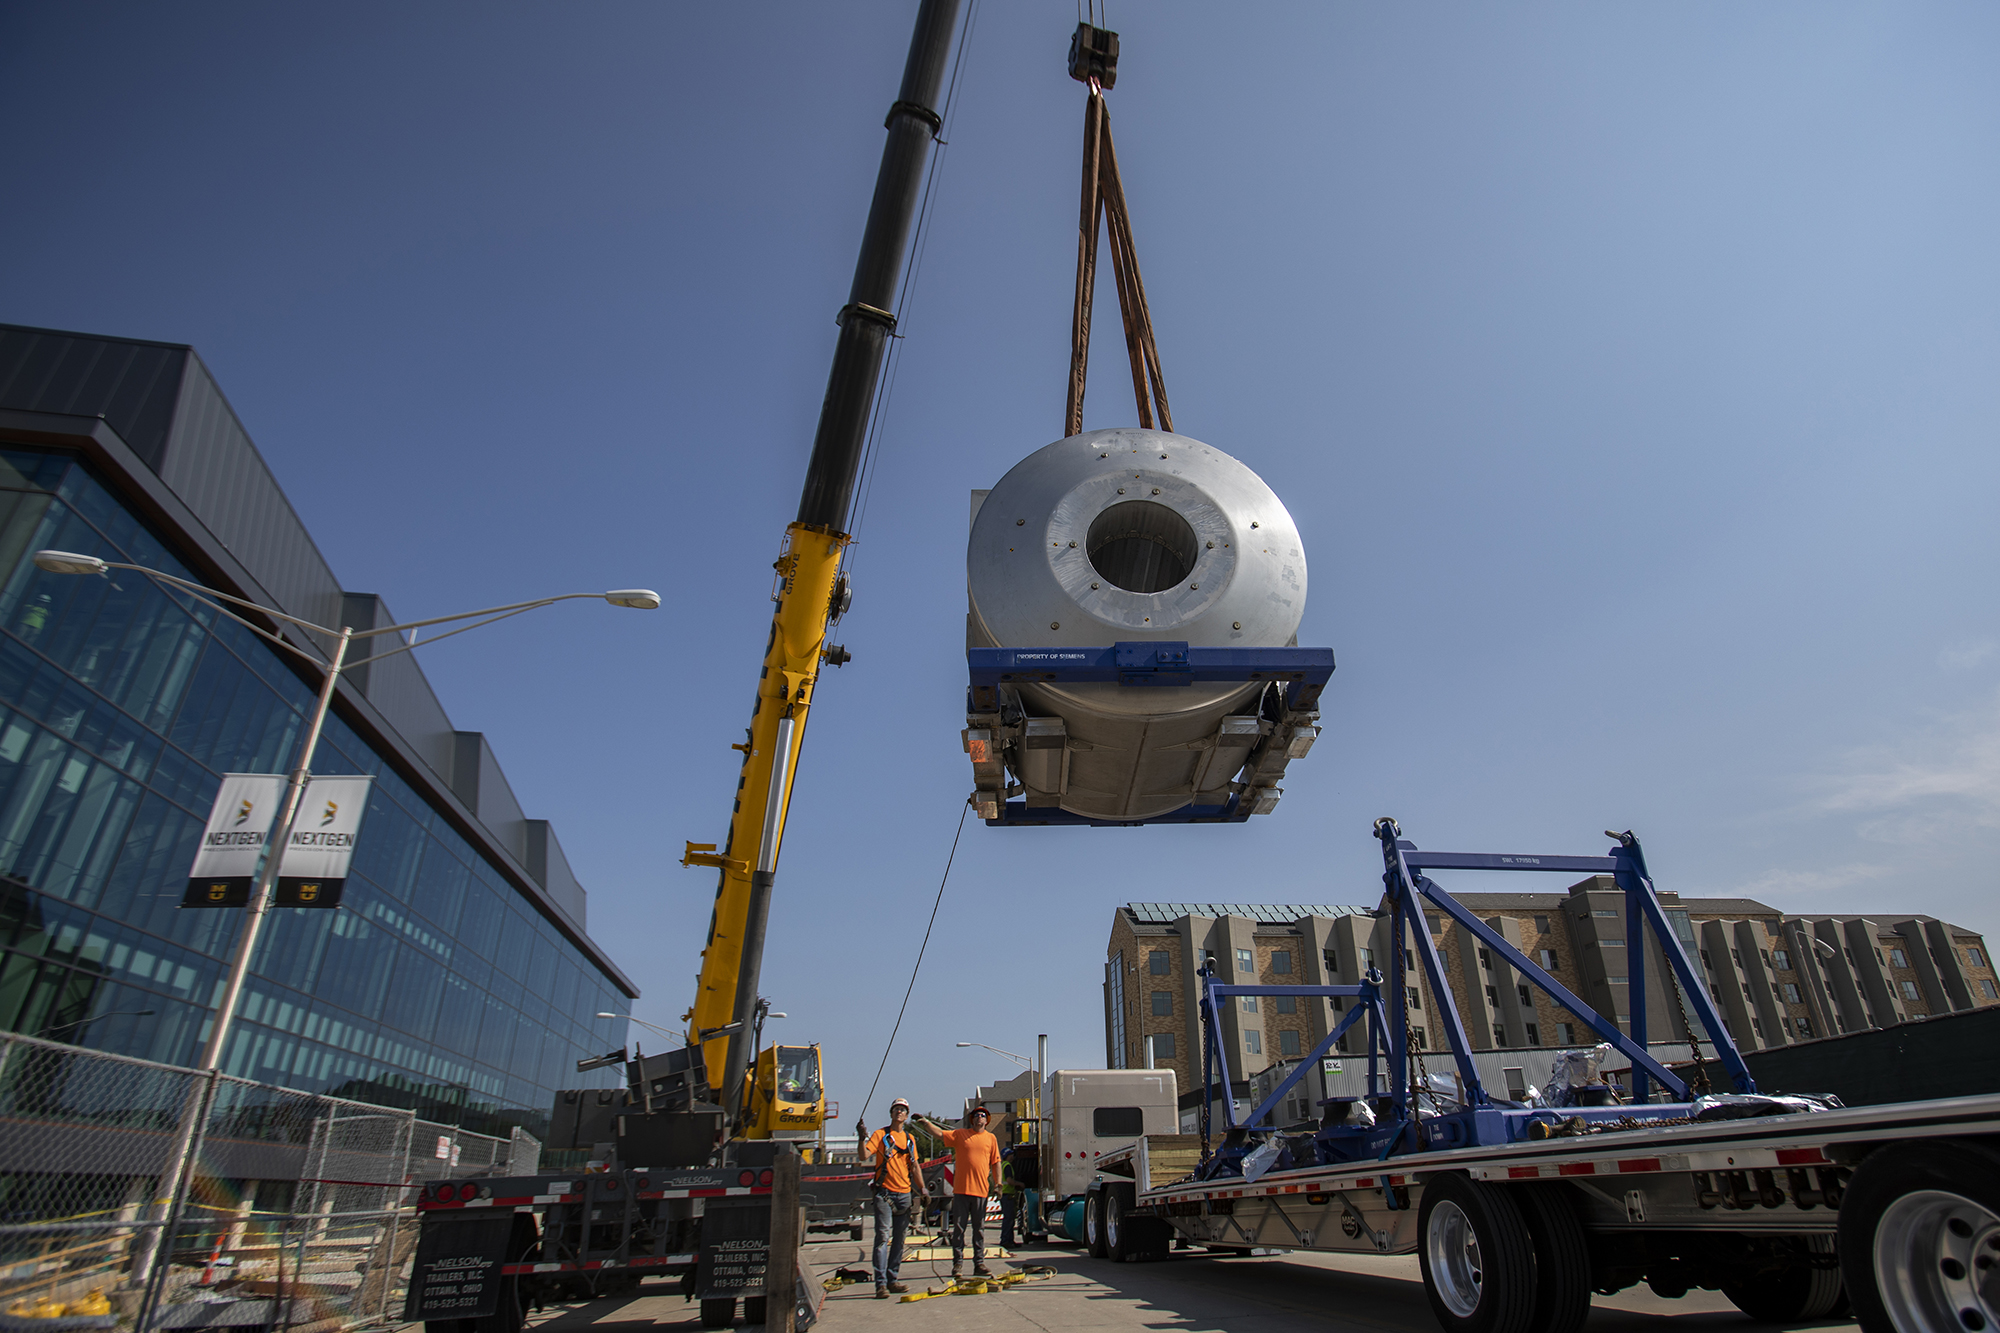 7T MRI is lifted by a crane